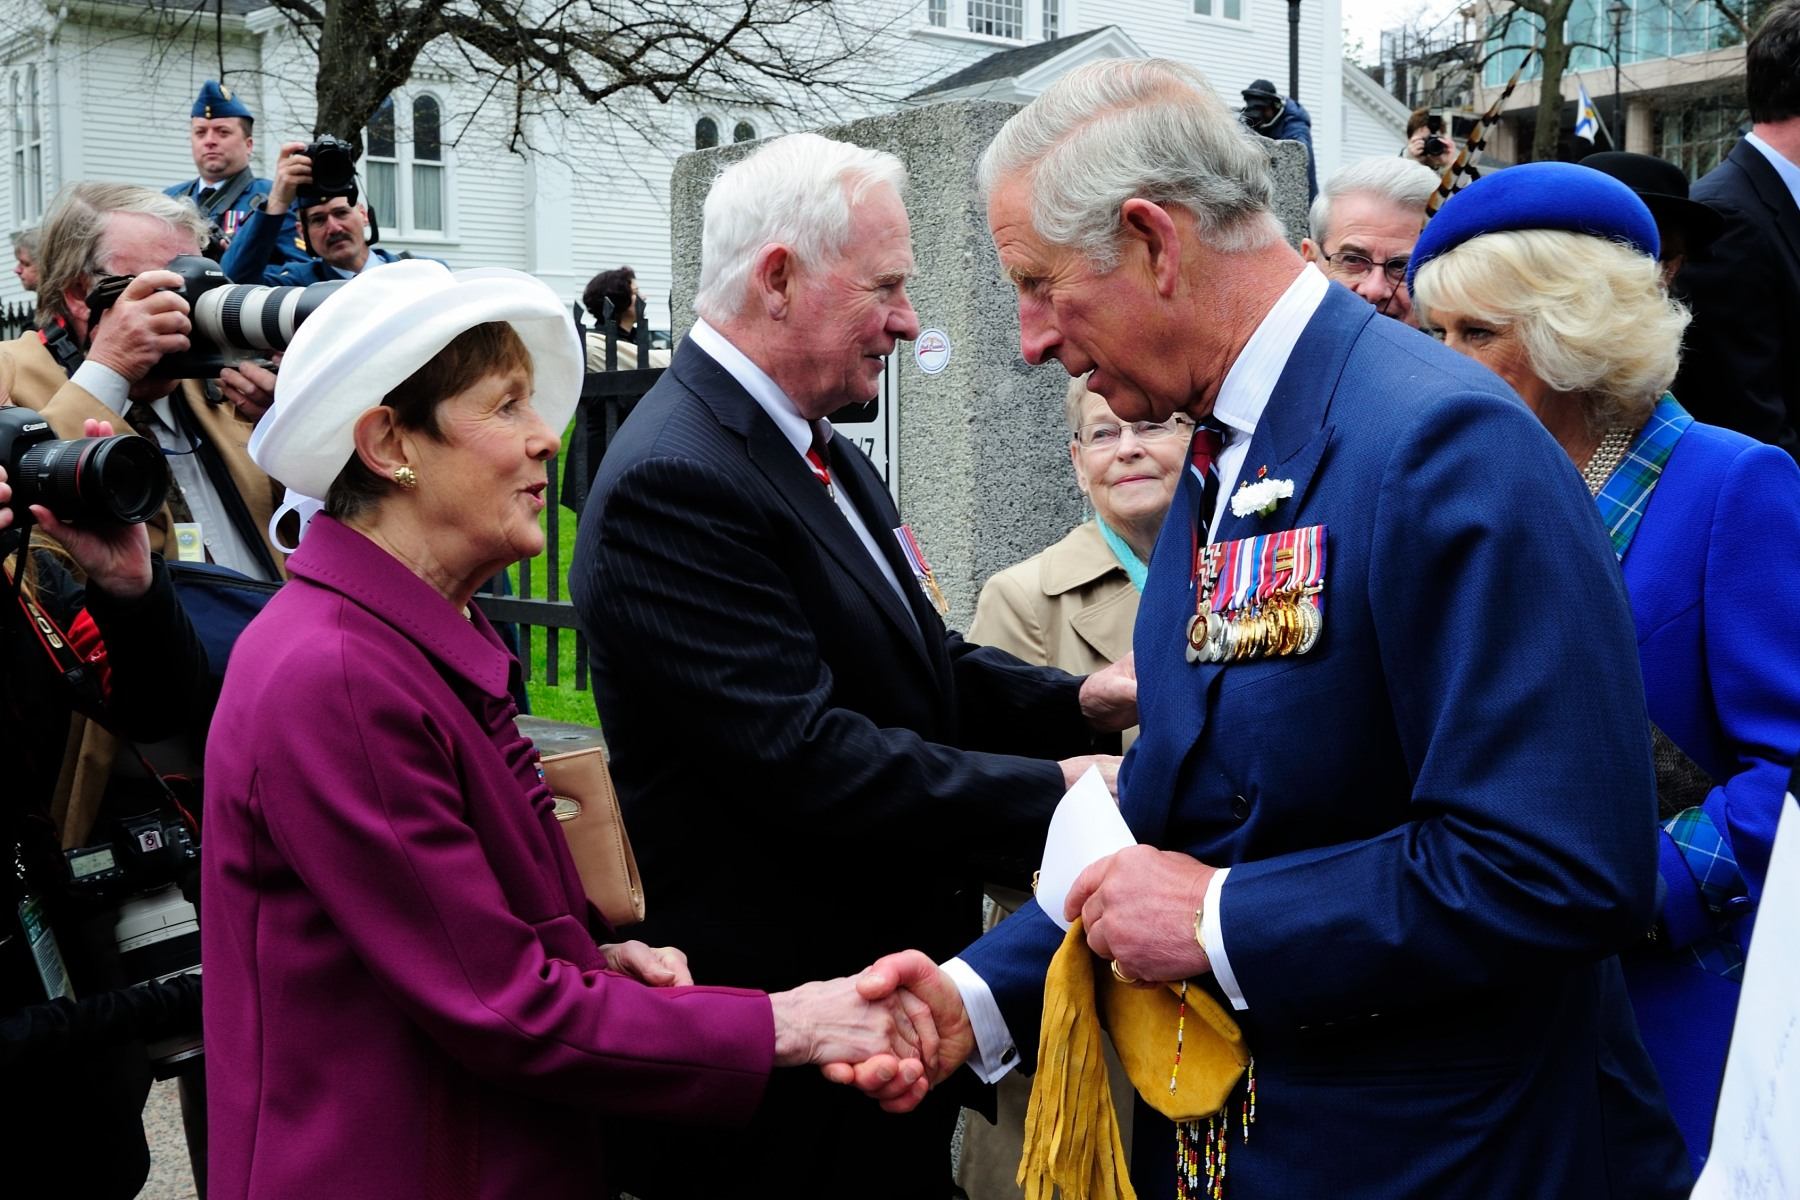 Following the ceremony, Their Excellencies bid Their Royal Highnesses farewell.